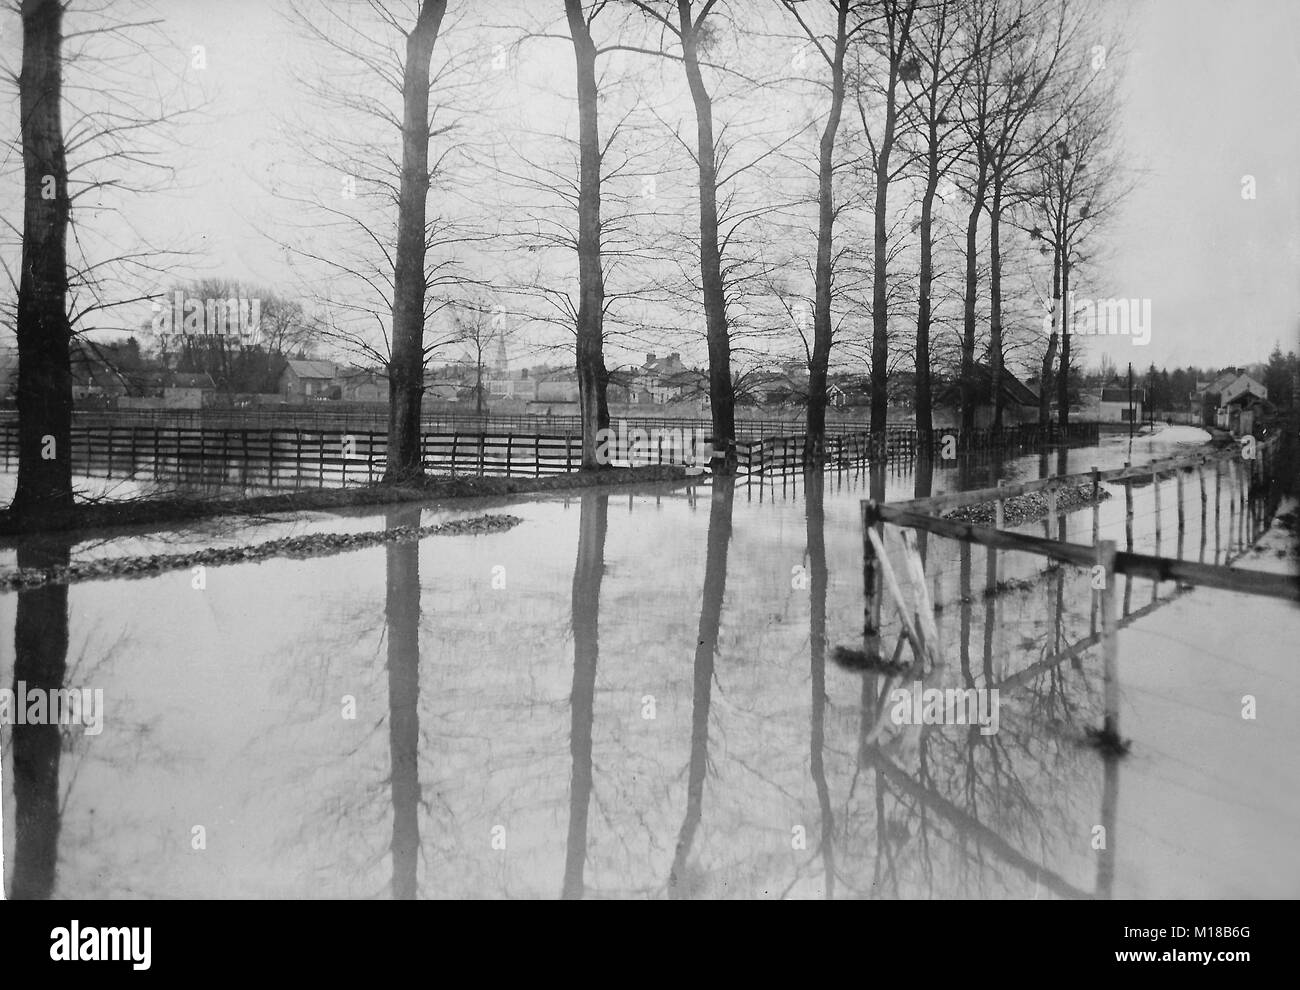 The historic flooding of Paris in the year 1910, flooded fields near Coulommiers for the growth of the Marna river - Stock Image